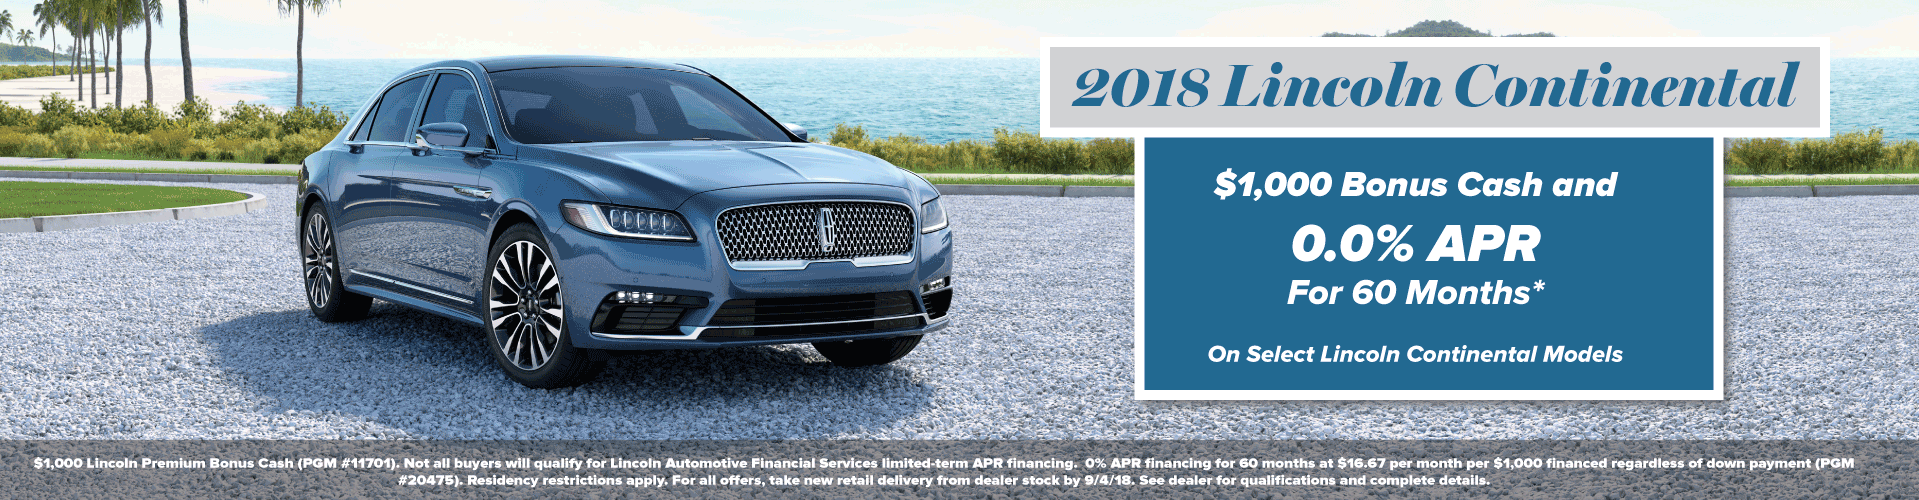 Lincoln Continental 2018 Summer Invitation